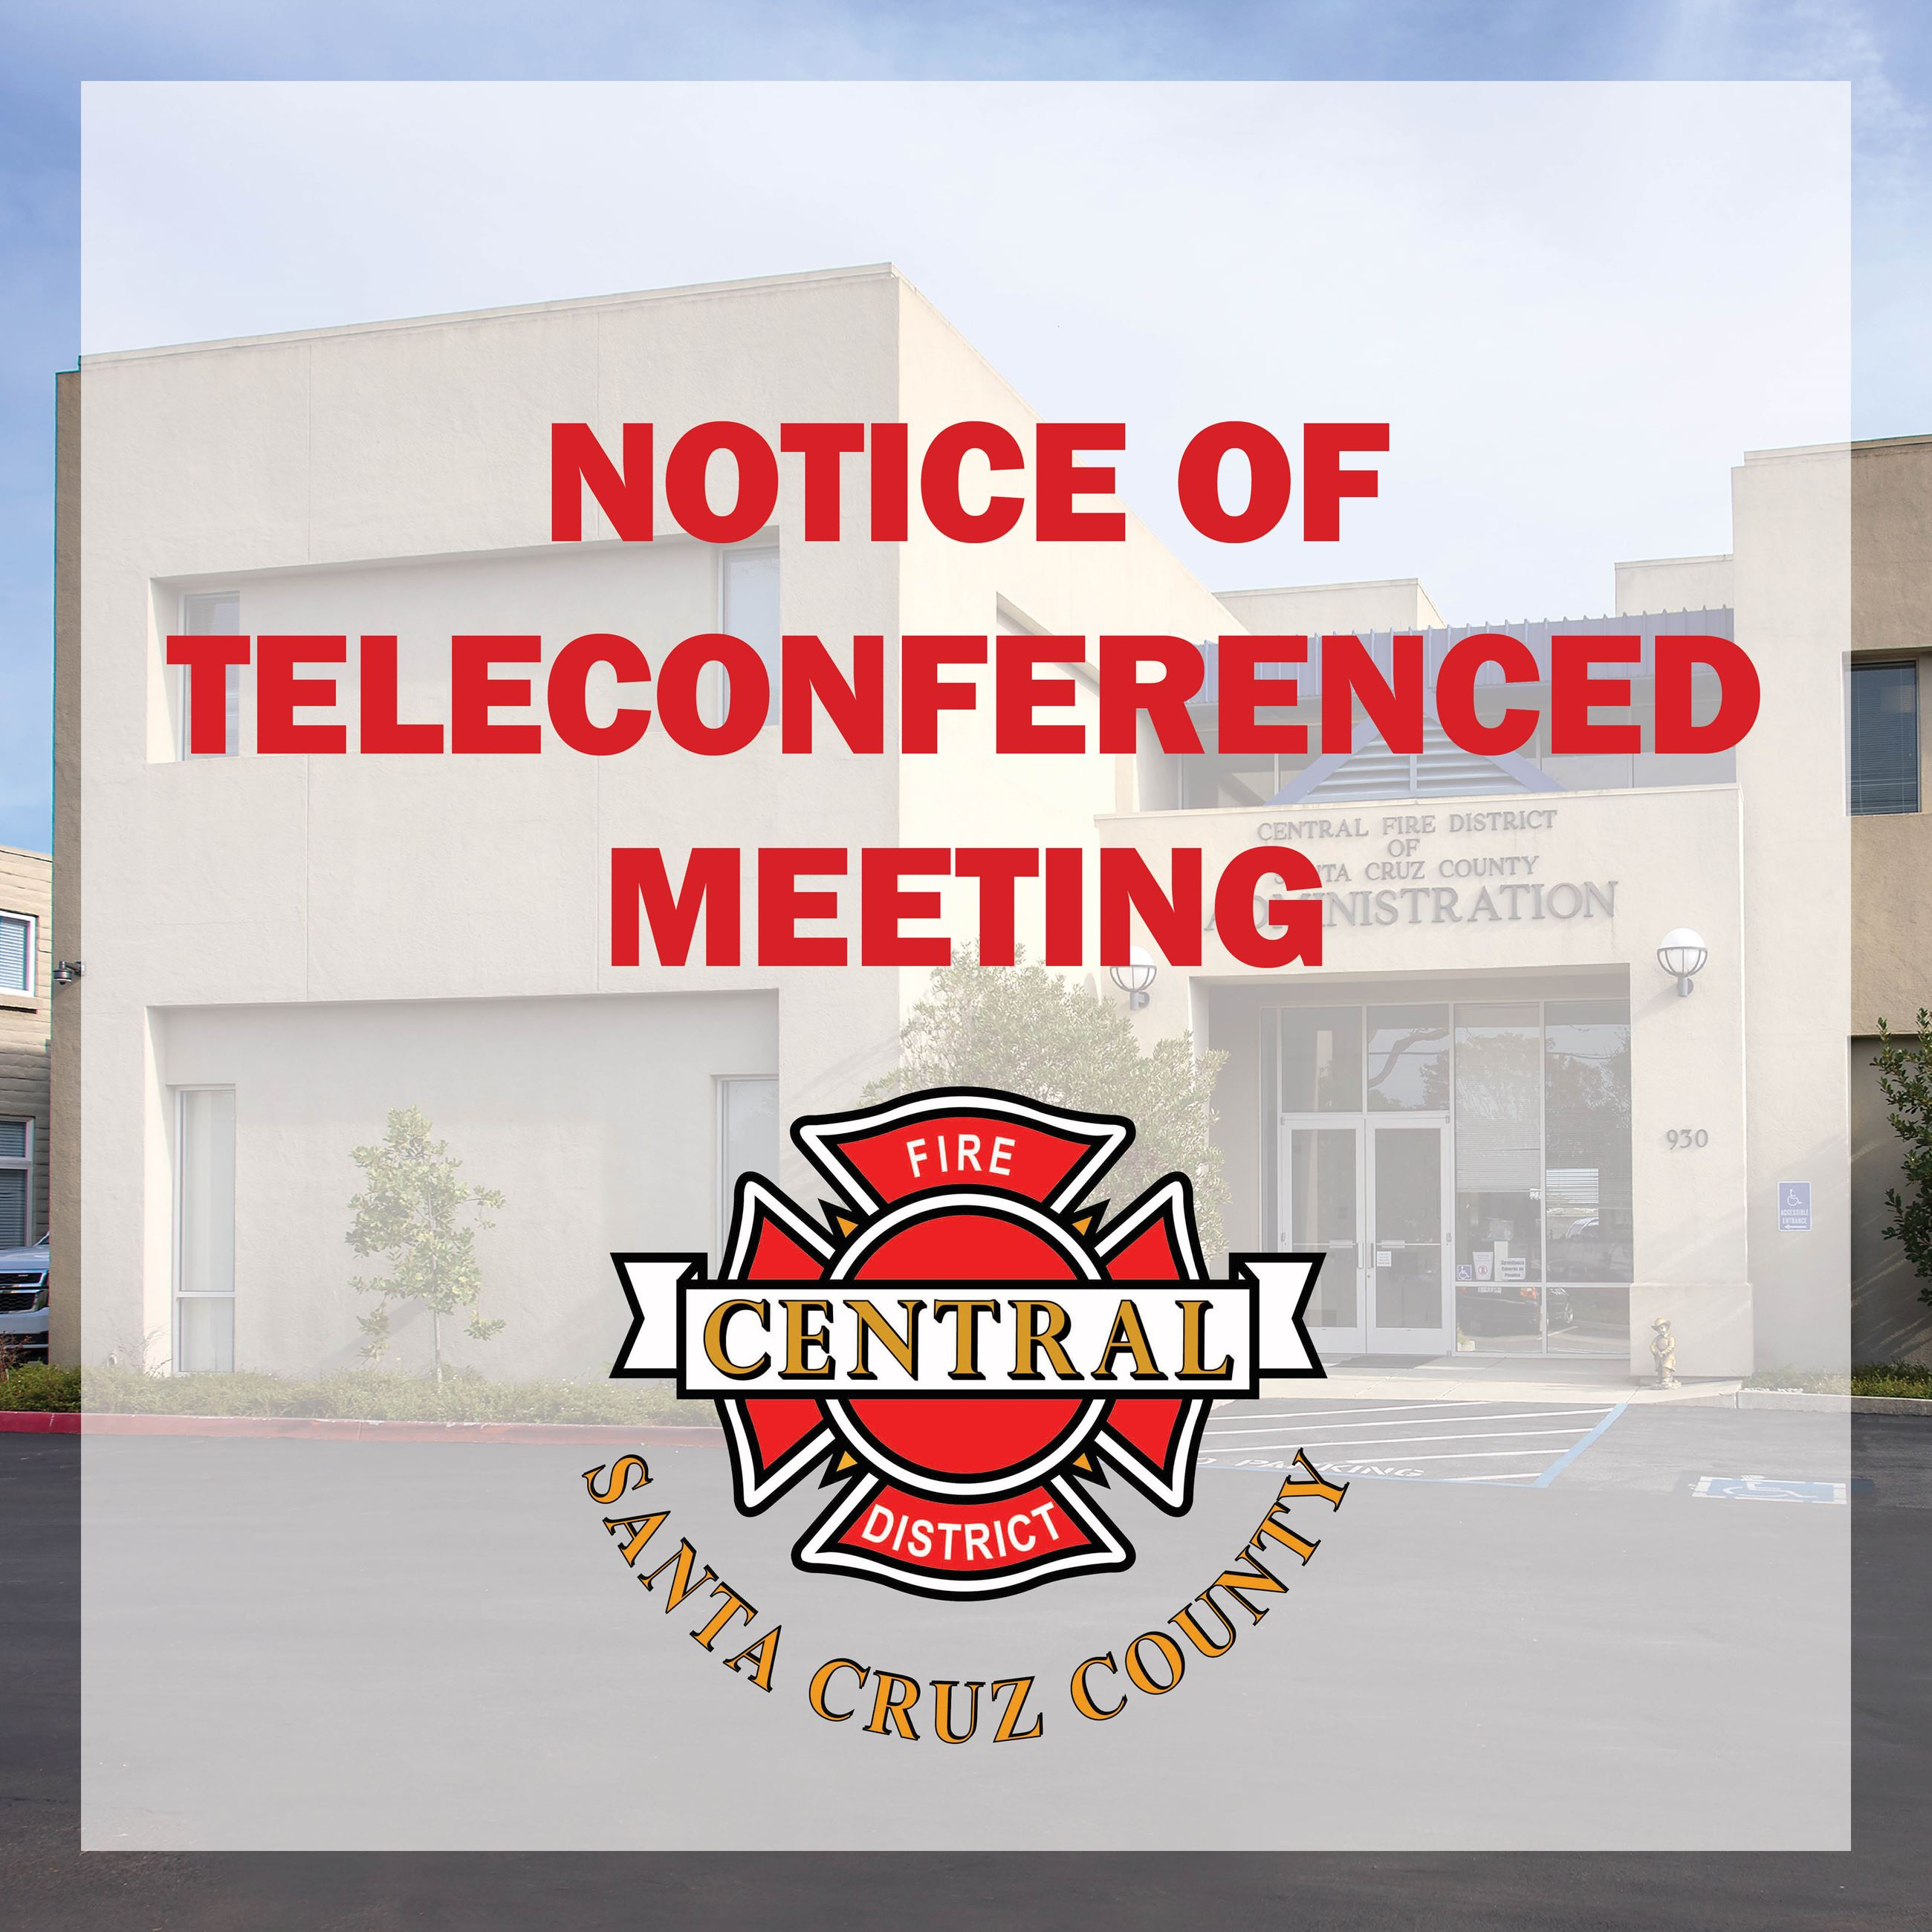 Notice of Teleconferenced Meeting - Central Fire